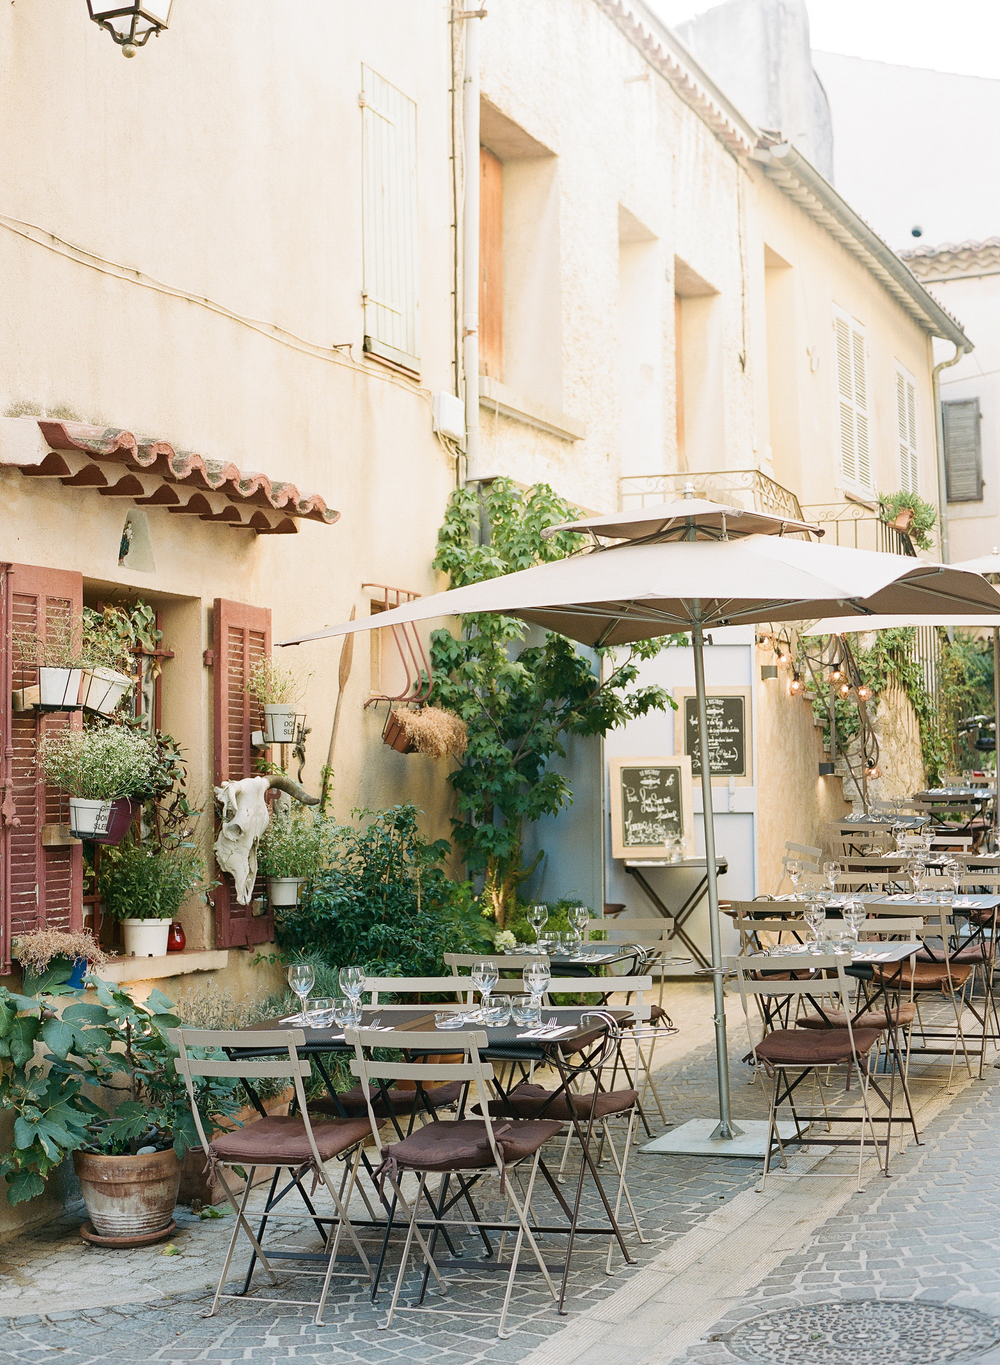 An outdoor cafe in an alley in Provence, France; photo by Sylvie Gil